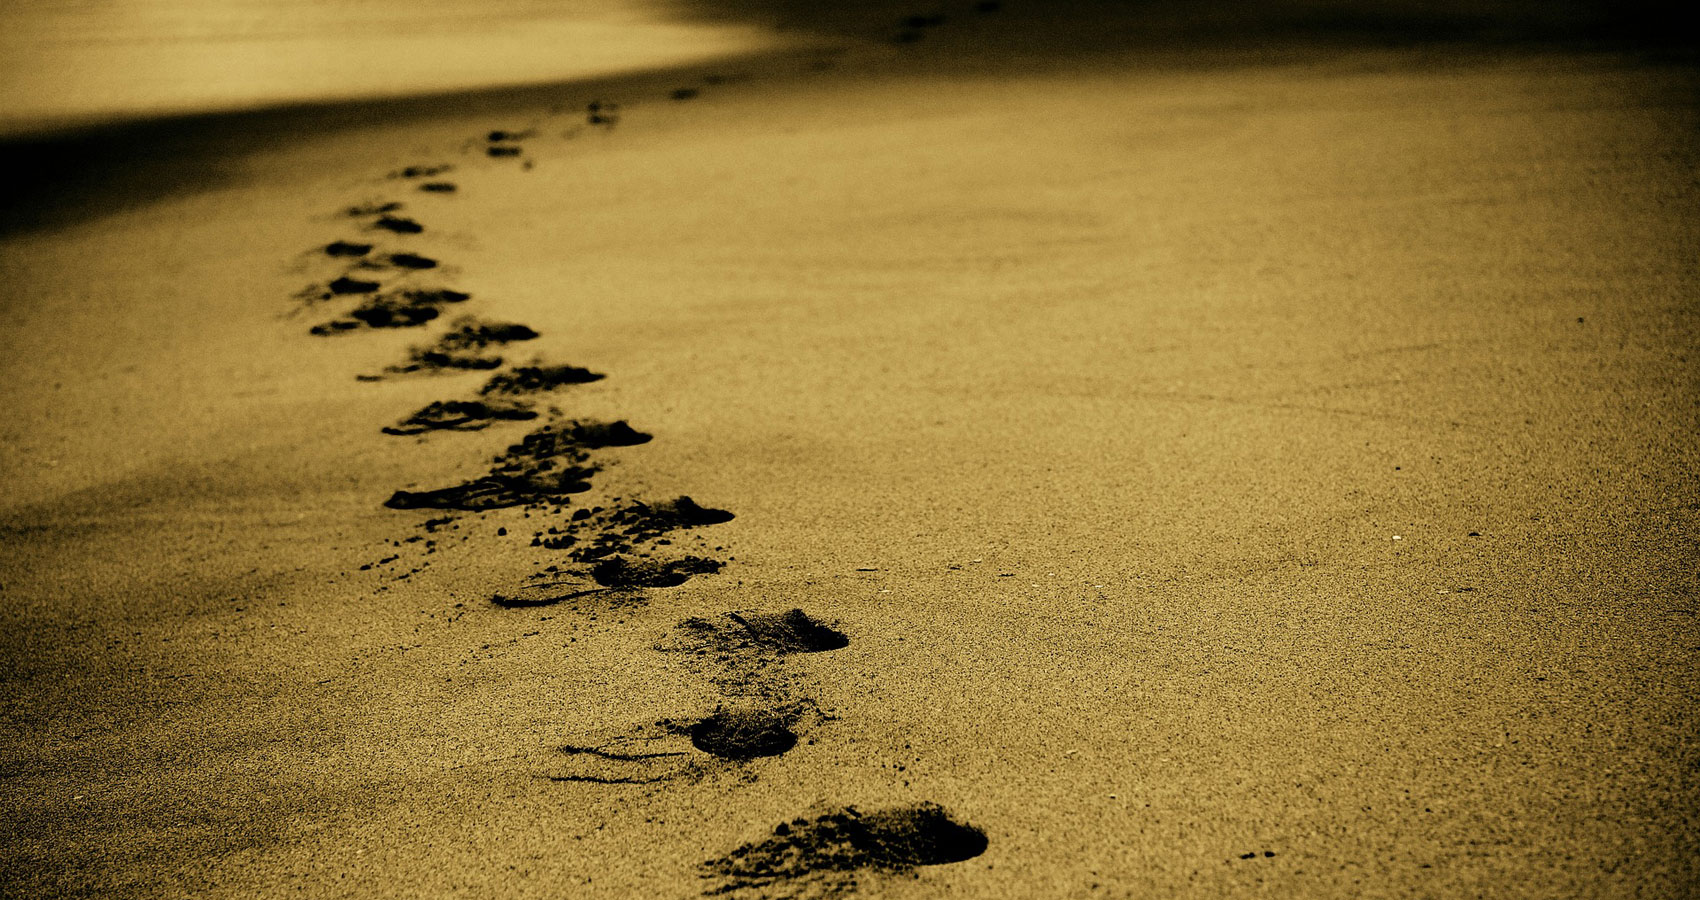 Footprints, a poem written by Shade at Spillwords.com